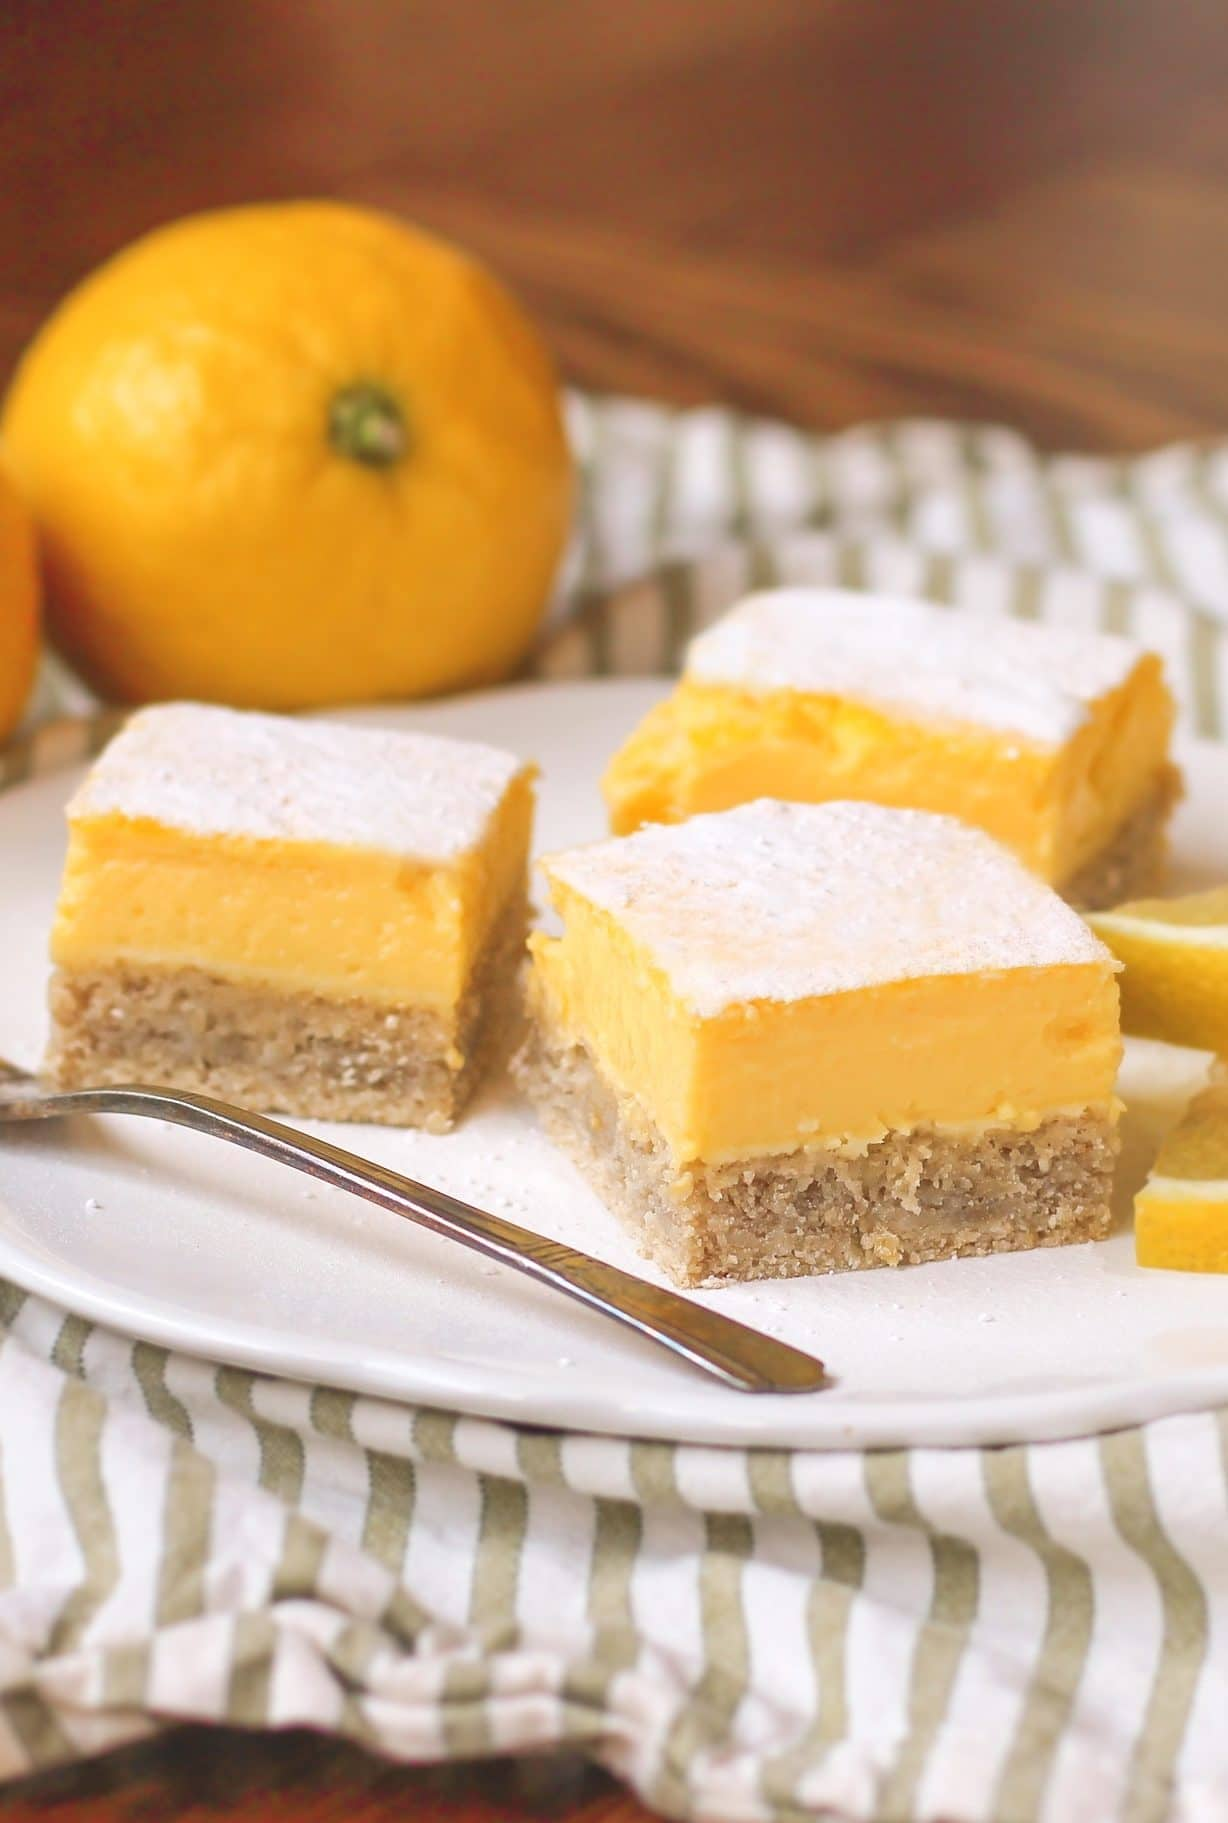 These Healthy Lemon Bars are made with stevia instead of refined sugar. They are sugar free, high in fiber and protein, gluten free, and taste delicious! Recipe in the Naughty or Nice Cookbook: The ULTIMATE Healthy Dessert Cookbook